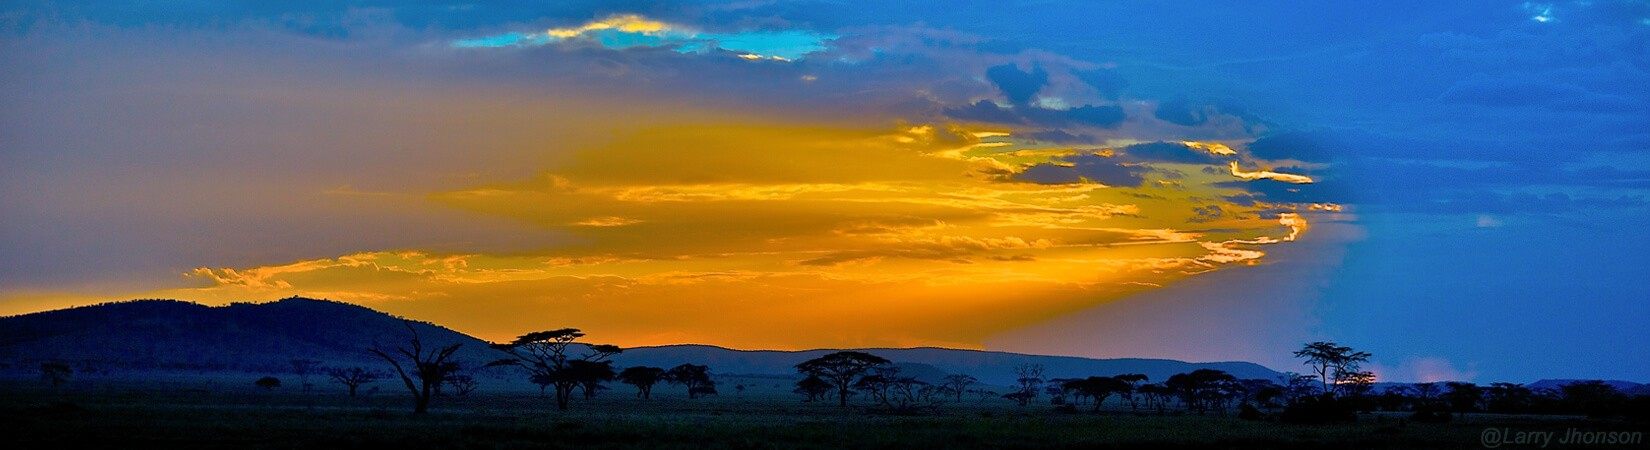 Sun set view, Tarango Nationla Park in Tanzania